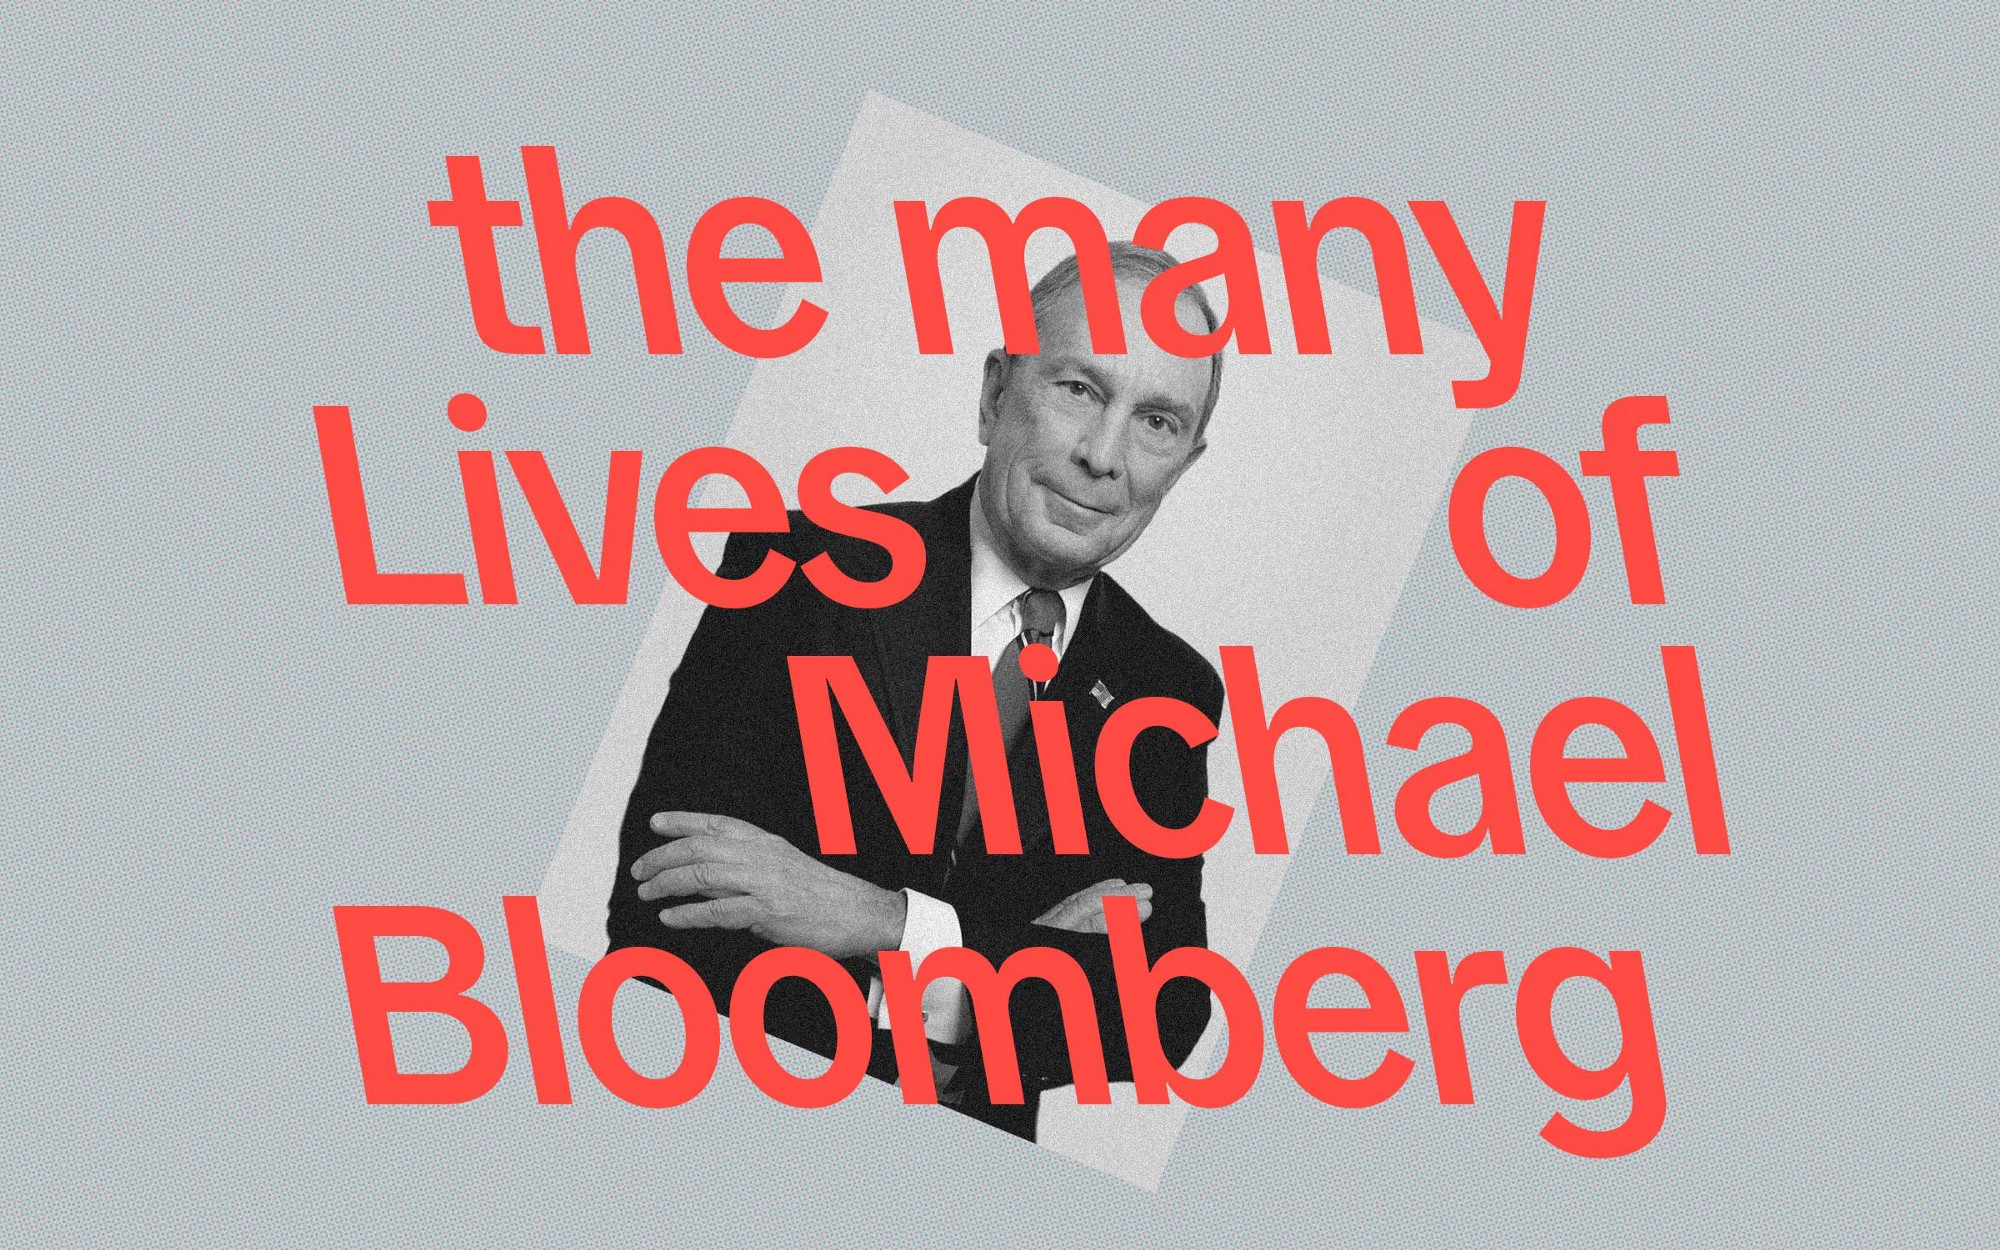 """A portrait photo of Michael Bloomberg with the text """"The Many Lives of Michael Bloomberg"""" juxtaposed over the image."""